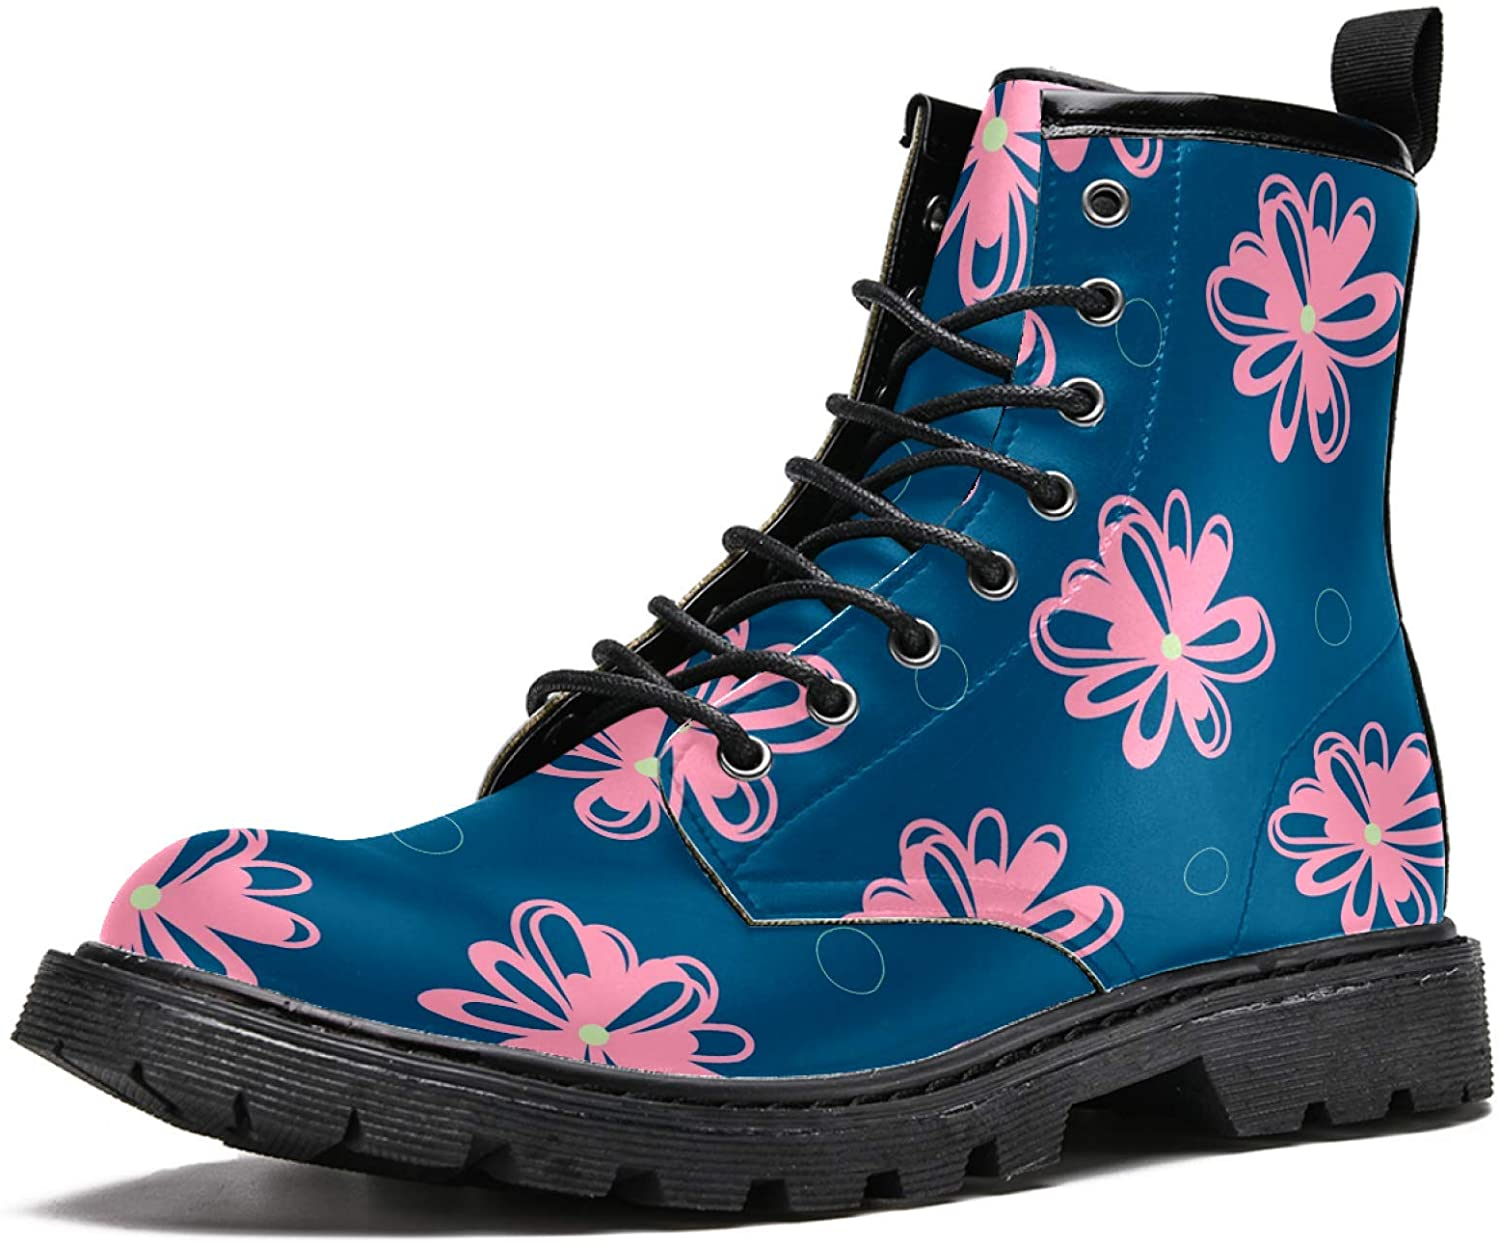 LORVIES Pink Floral Pattern Men's High Top Boots Lace Up Casual Leather Ankle Shoes